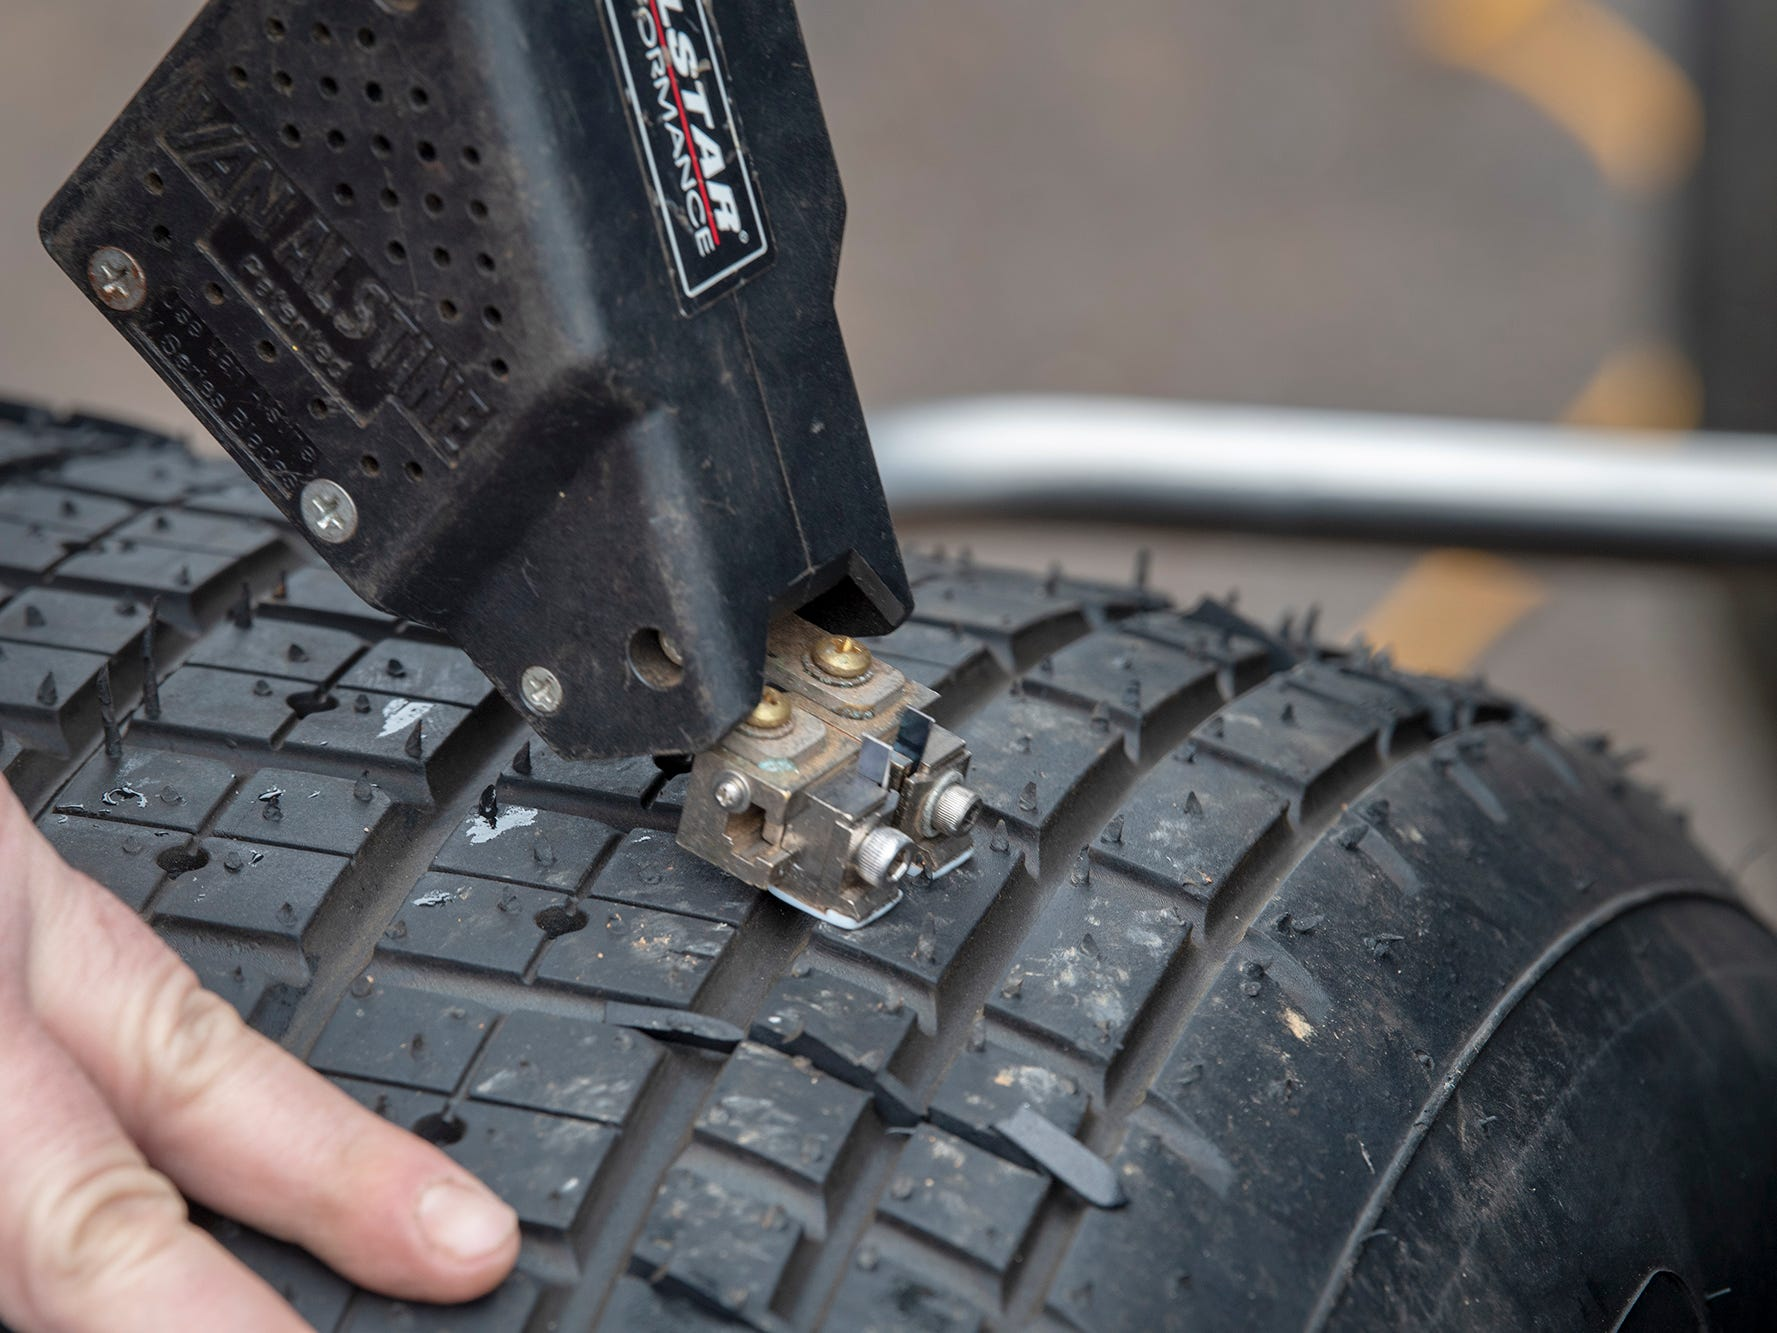 A device is used to add cuts in a tire to help traction on the muddy surface during the Lincoln Speedway Ice Breaker 30 on Sunday near Abbottstown.